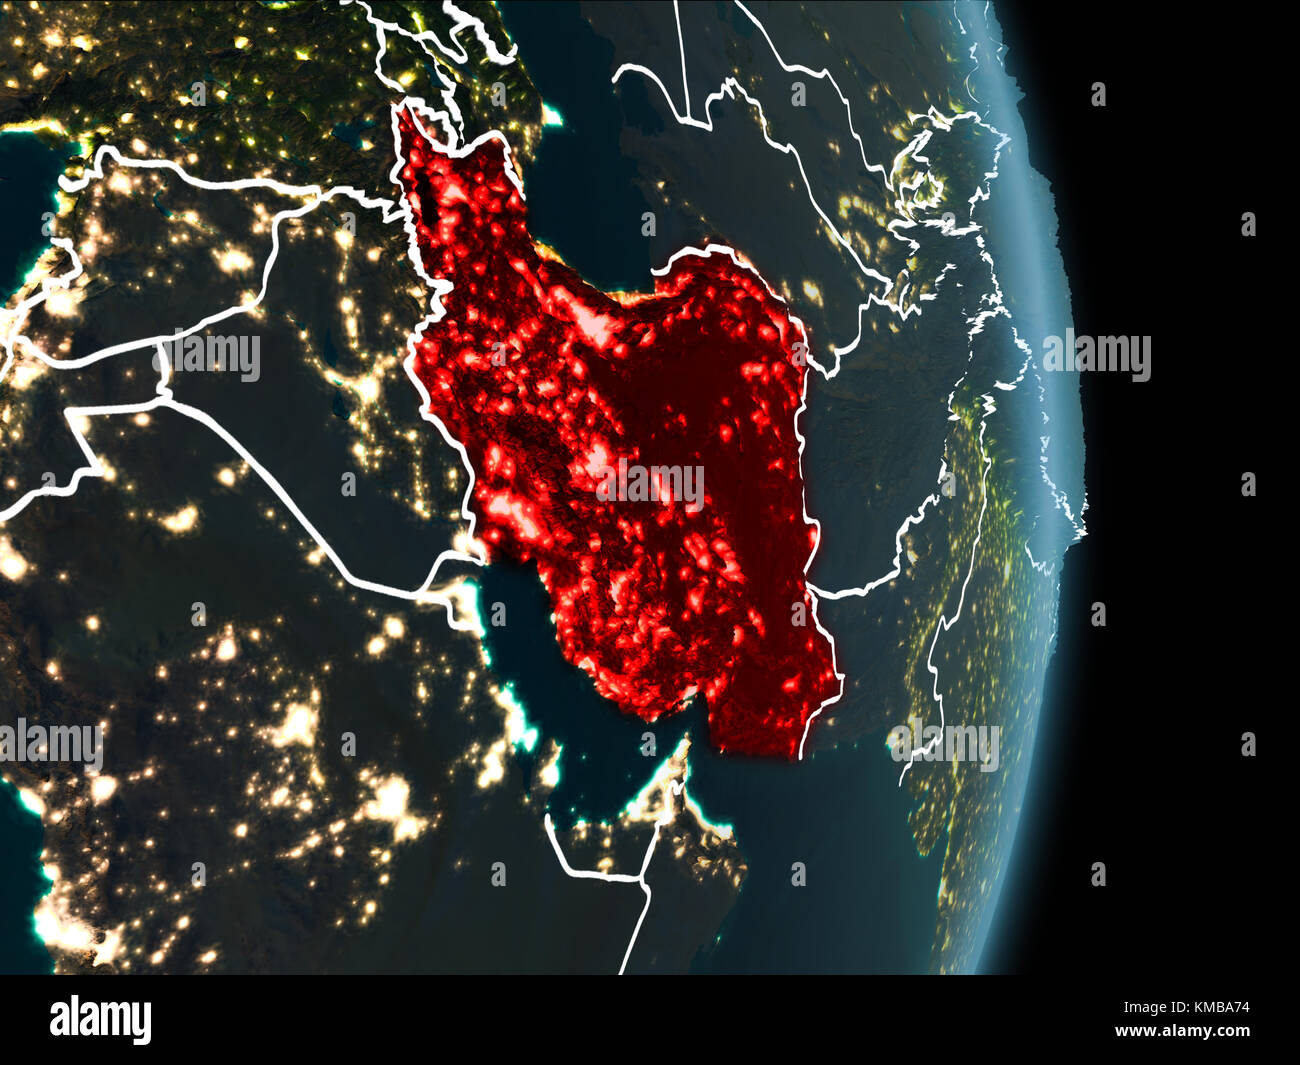 Map Of Iran In Red As Seen From Space On Planet Earth At Night - Map of the world from space at night